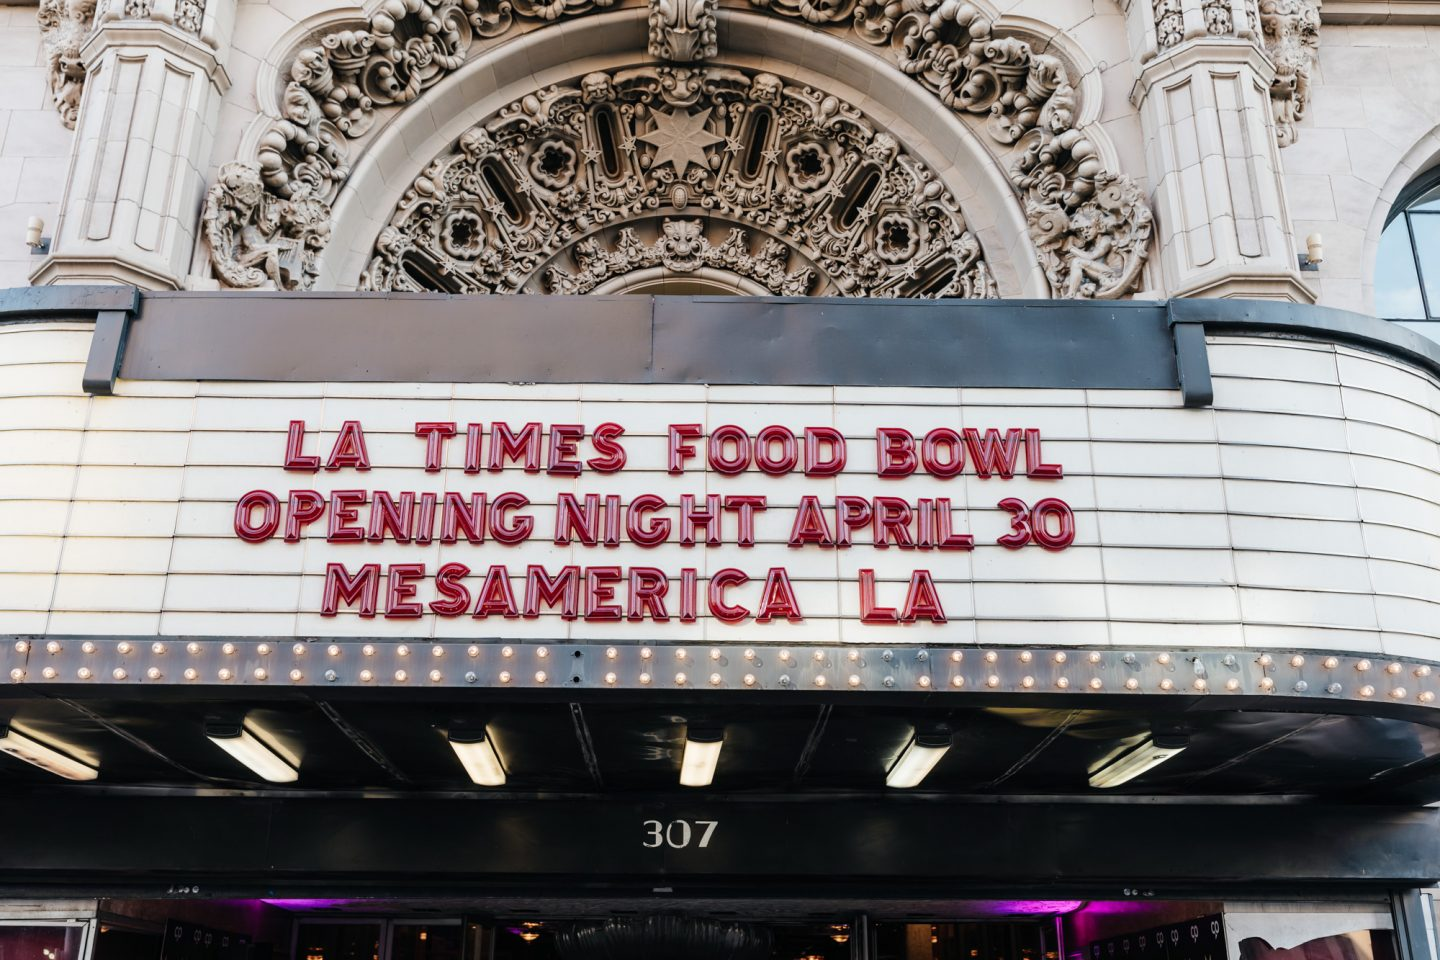 Los Angeles Food Bowl 2019